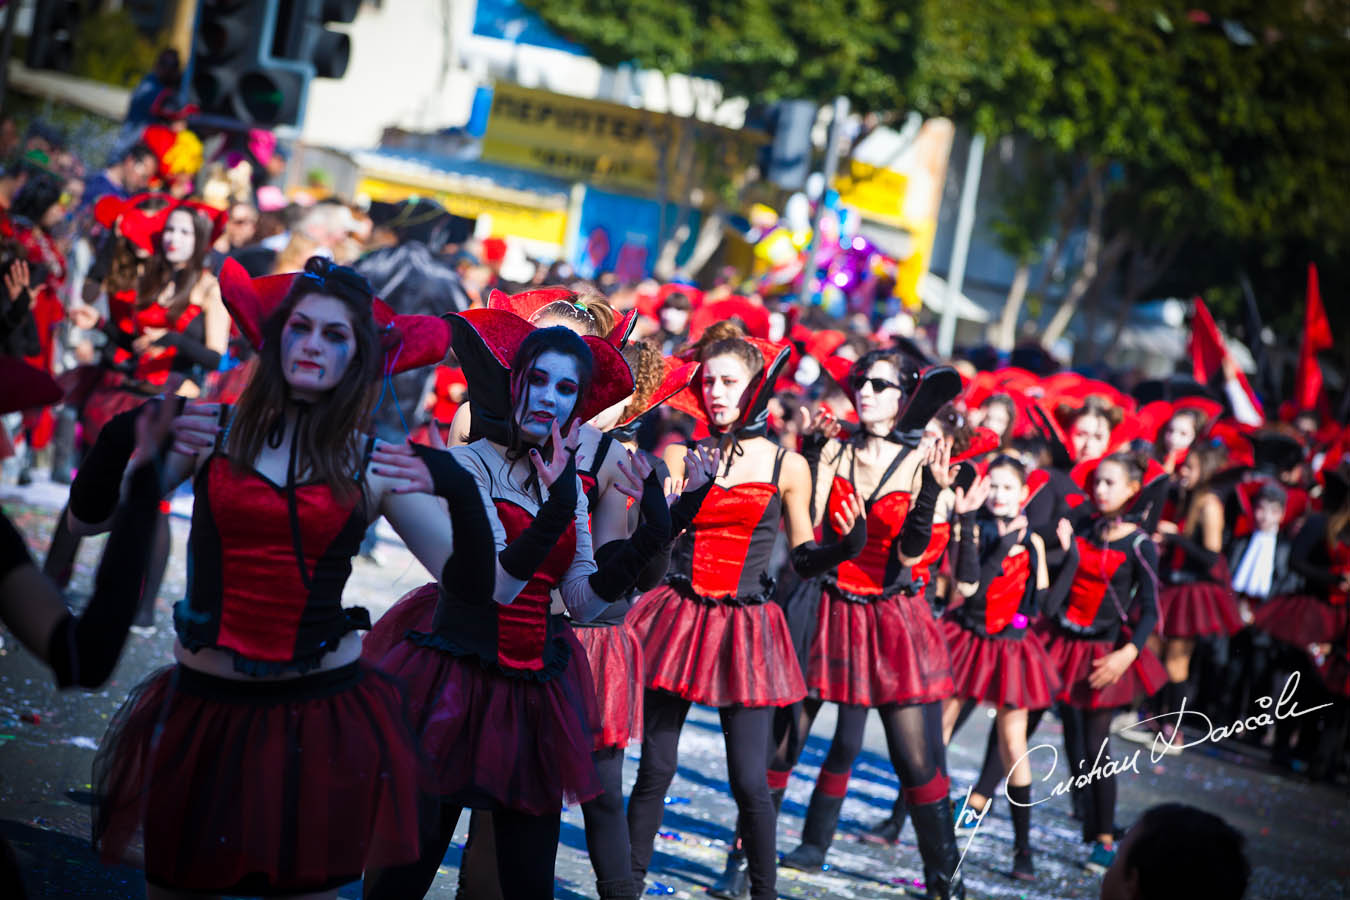 Limassol Carnival 2012 - The Grand Parade